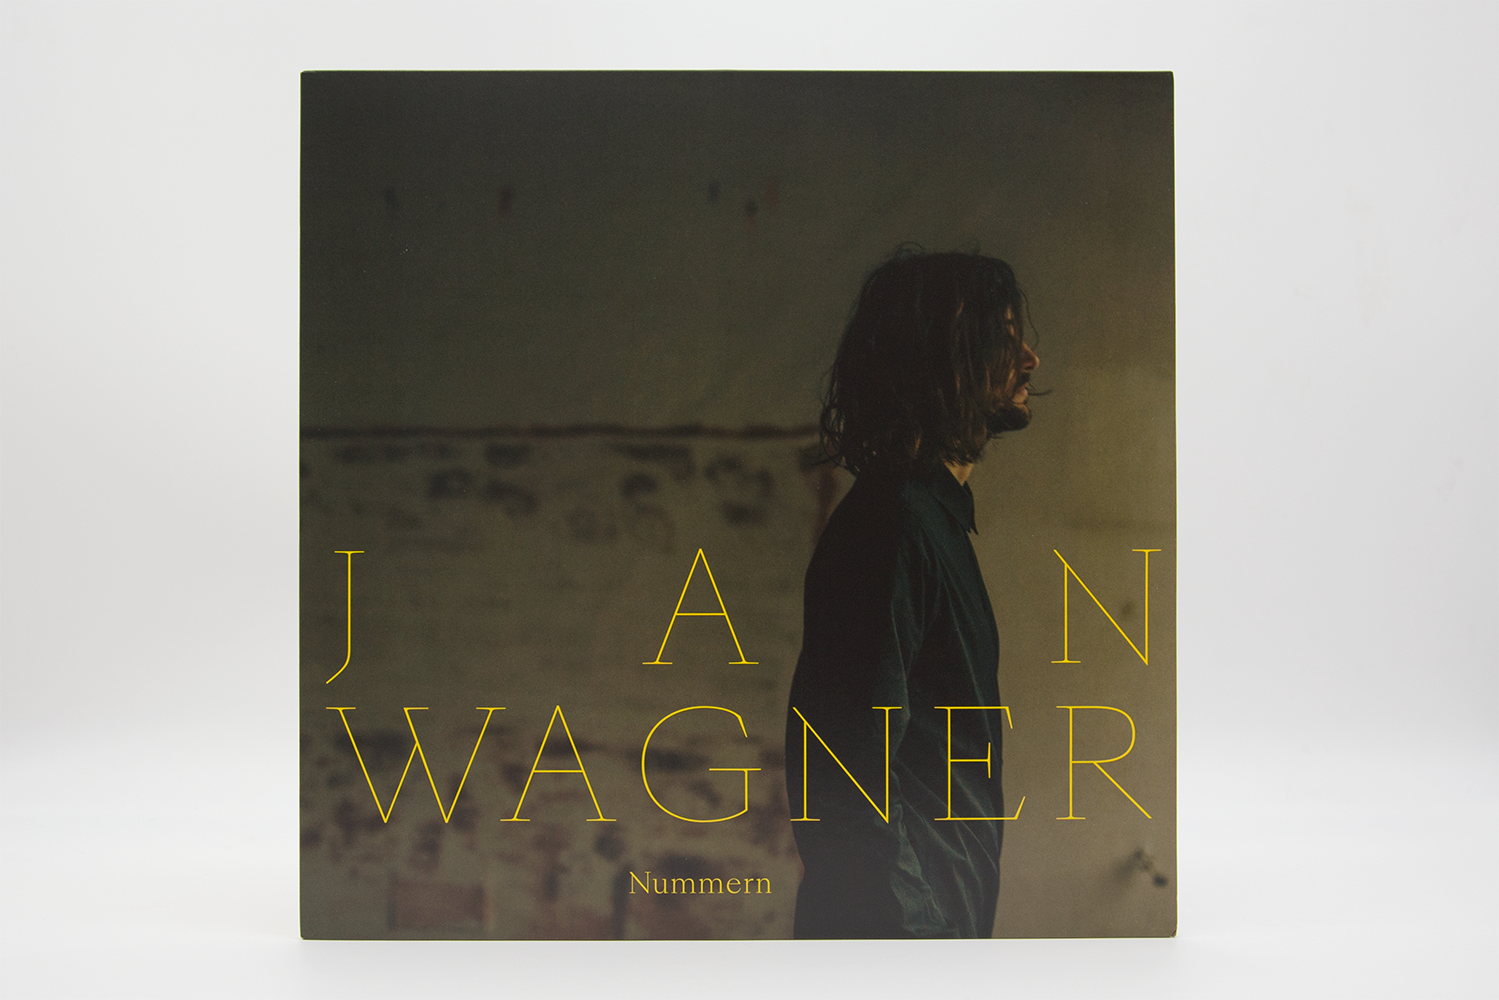 Jan Wagner Front